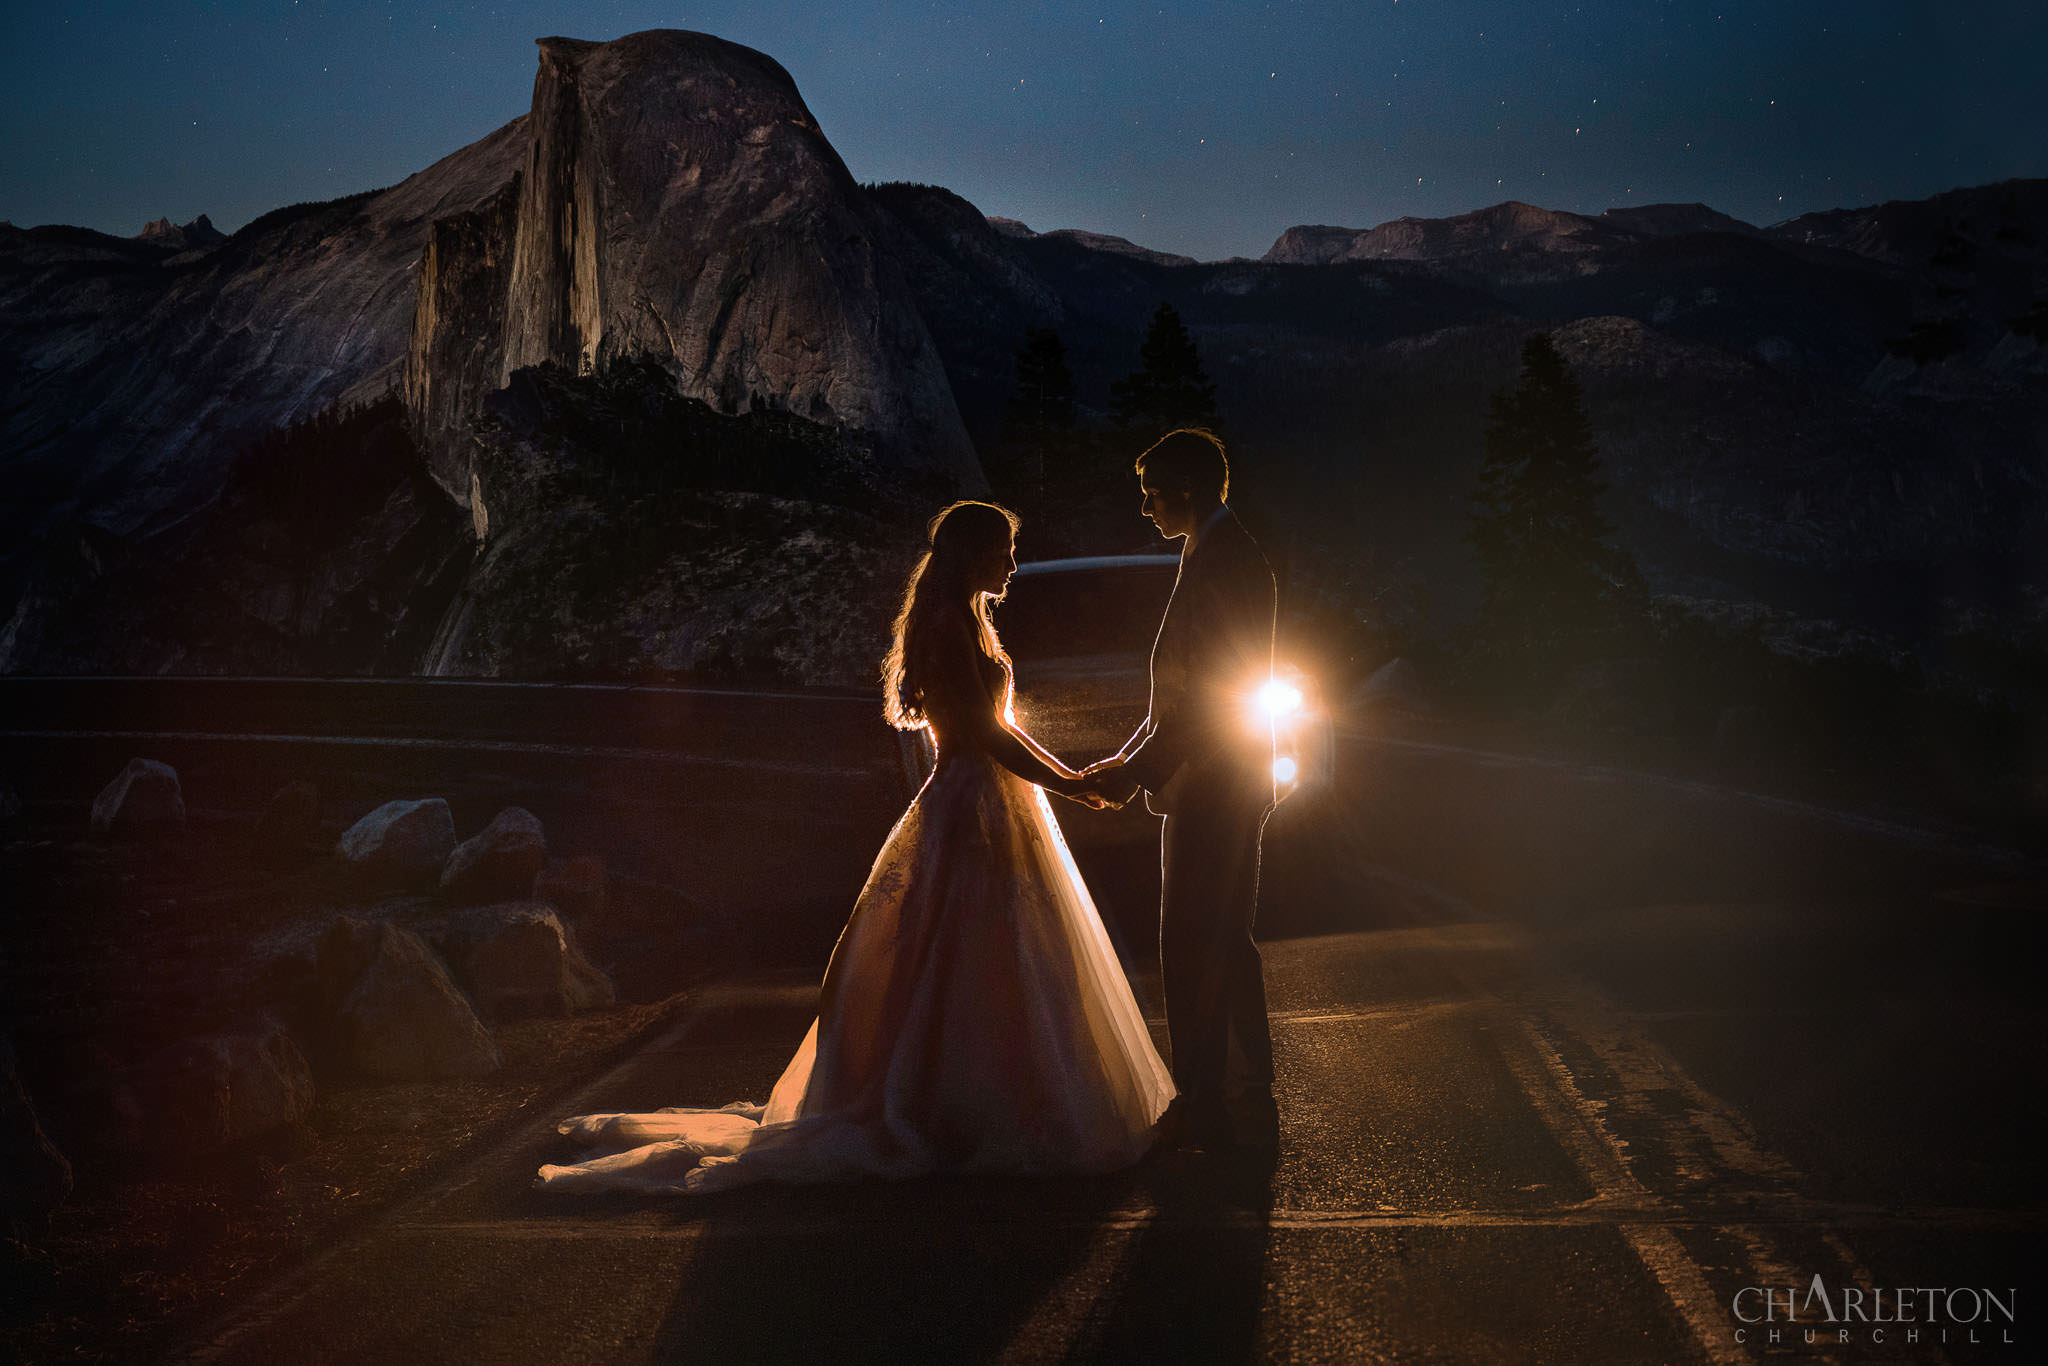 yosemite elopement creative night with stars and car headlights by photographer charleton churchill